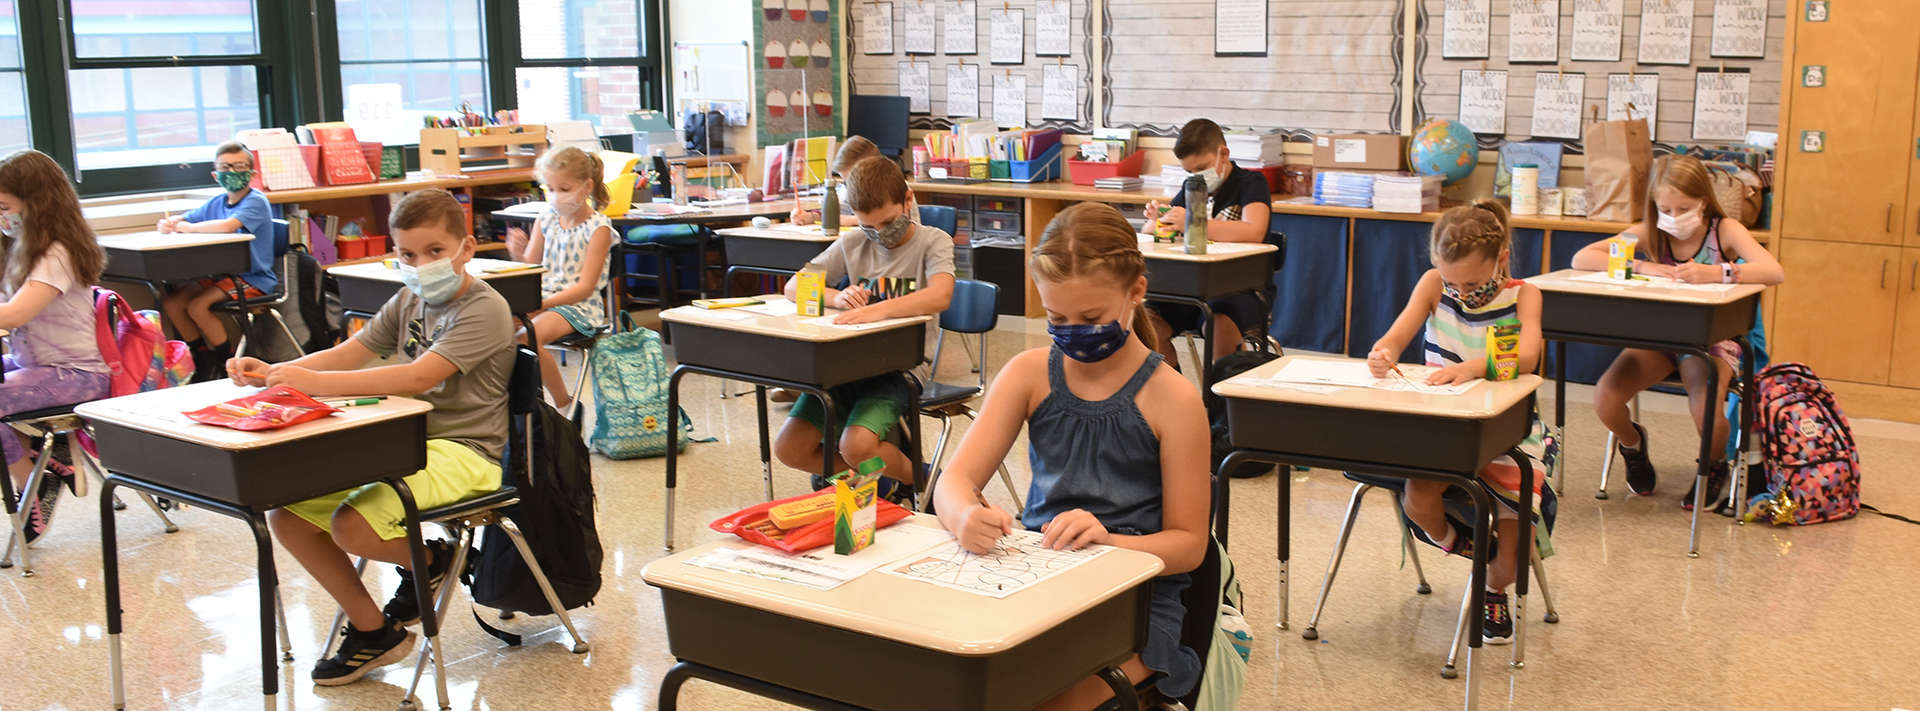 3rd grade students sit at desks in class